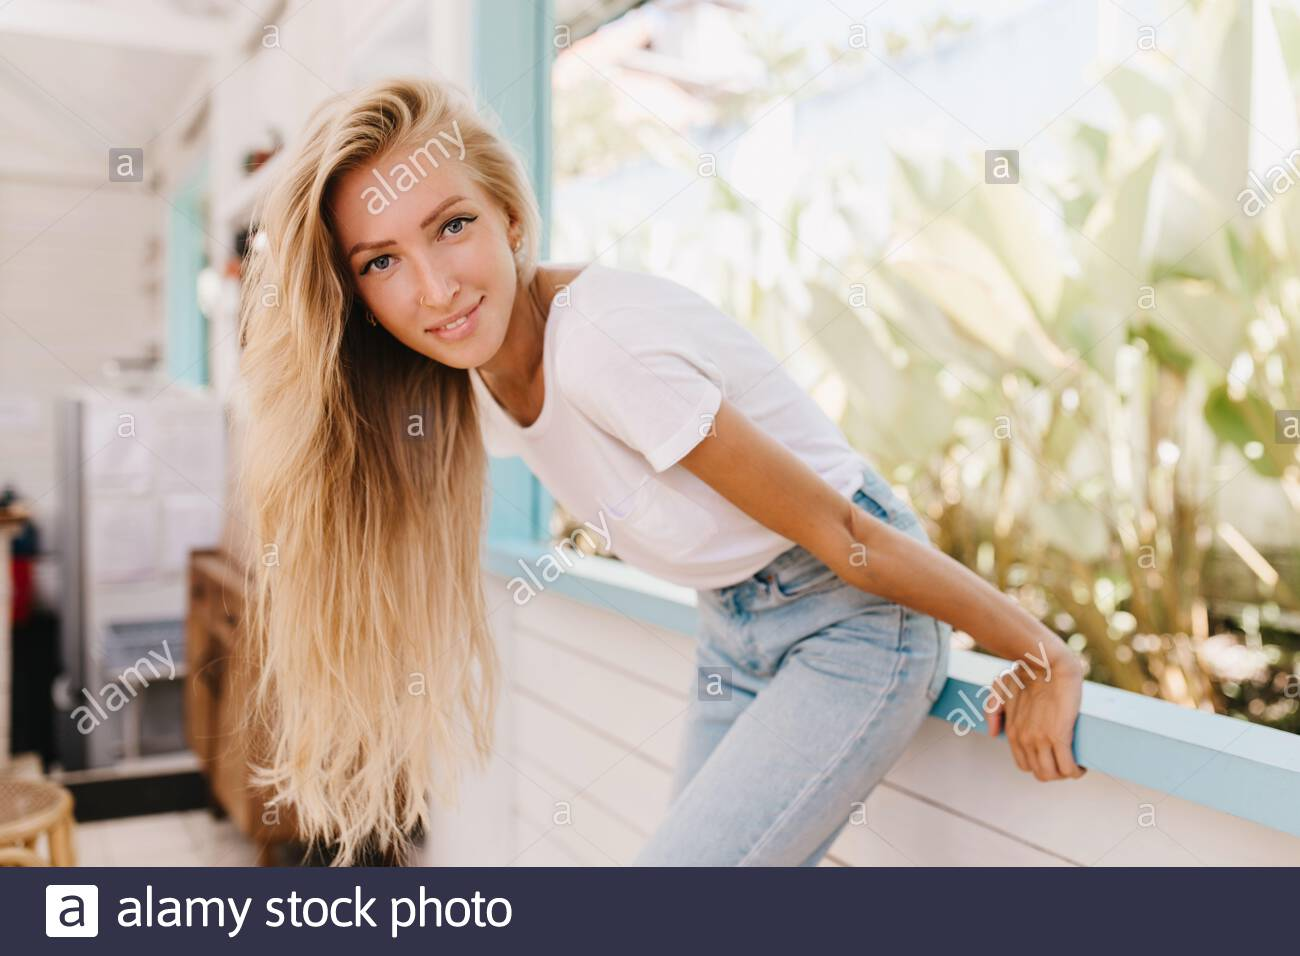 Woman Long Blonde Hair Tanned High Resolution Stock Photography And Images Alamy